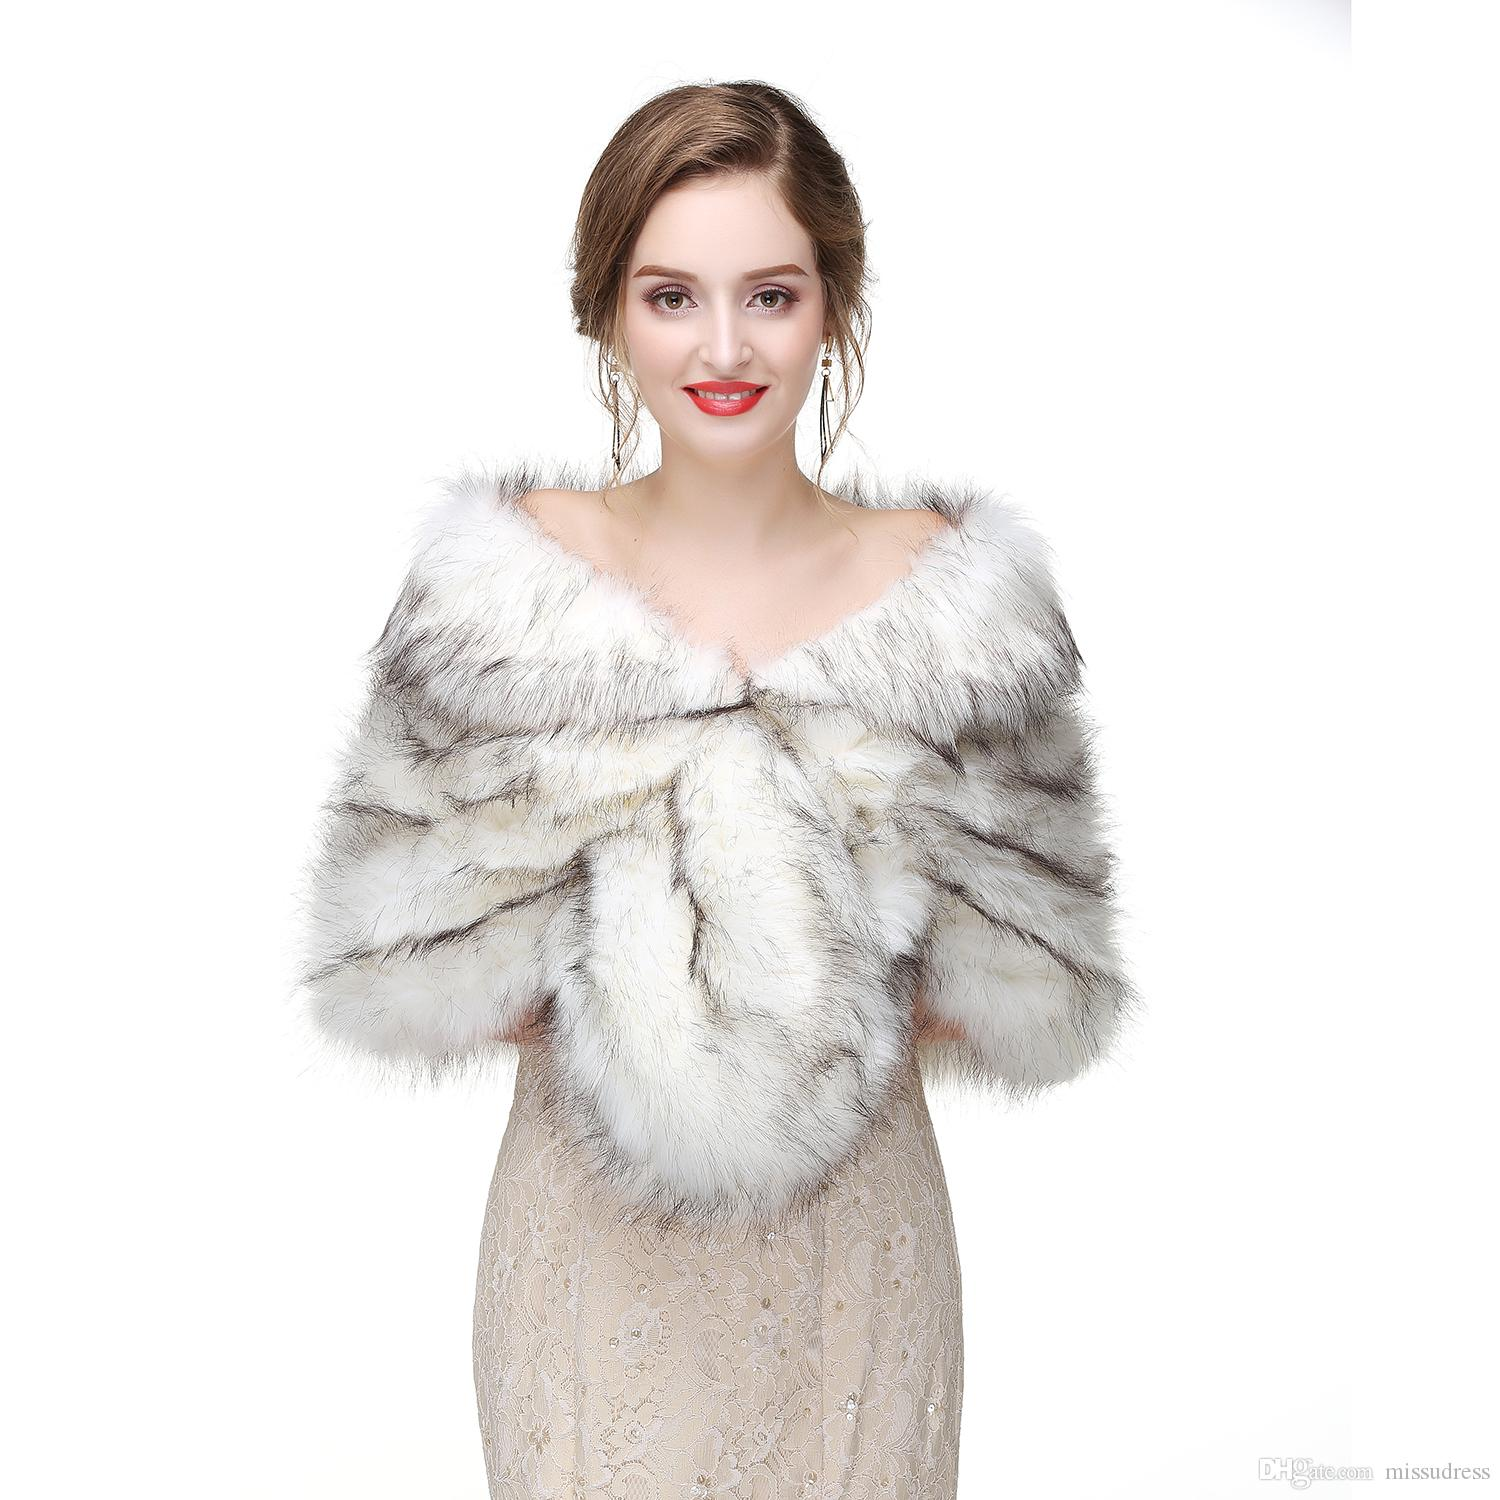 38c1d7263d5 2019 2017 Bridal Wraps Bolero Faux Fur For Wedding Evening Party Prom  Jacket Coat Winter White Fur Shawl Wedding From Missudress